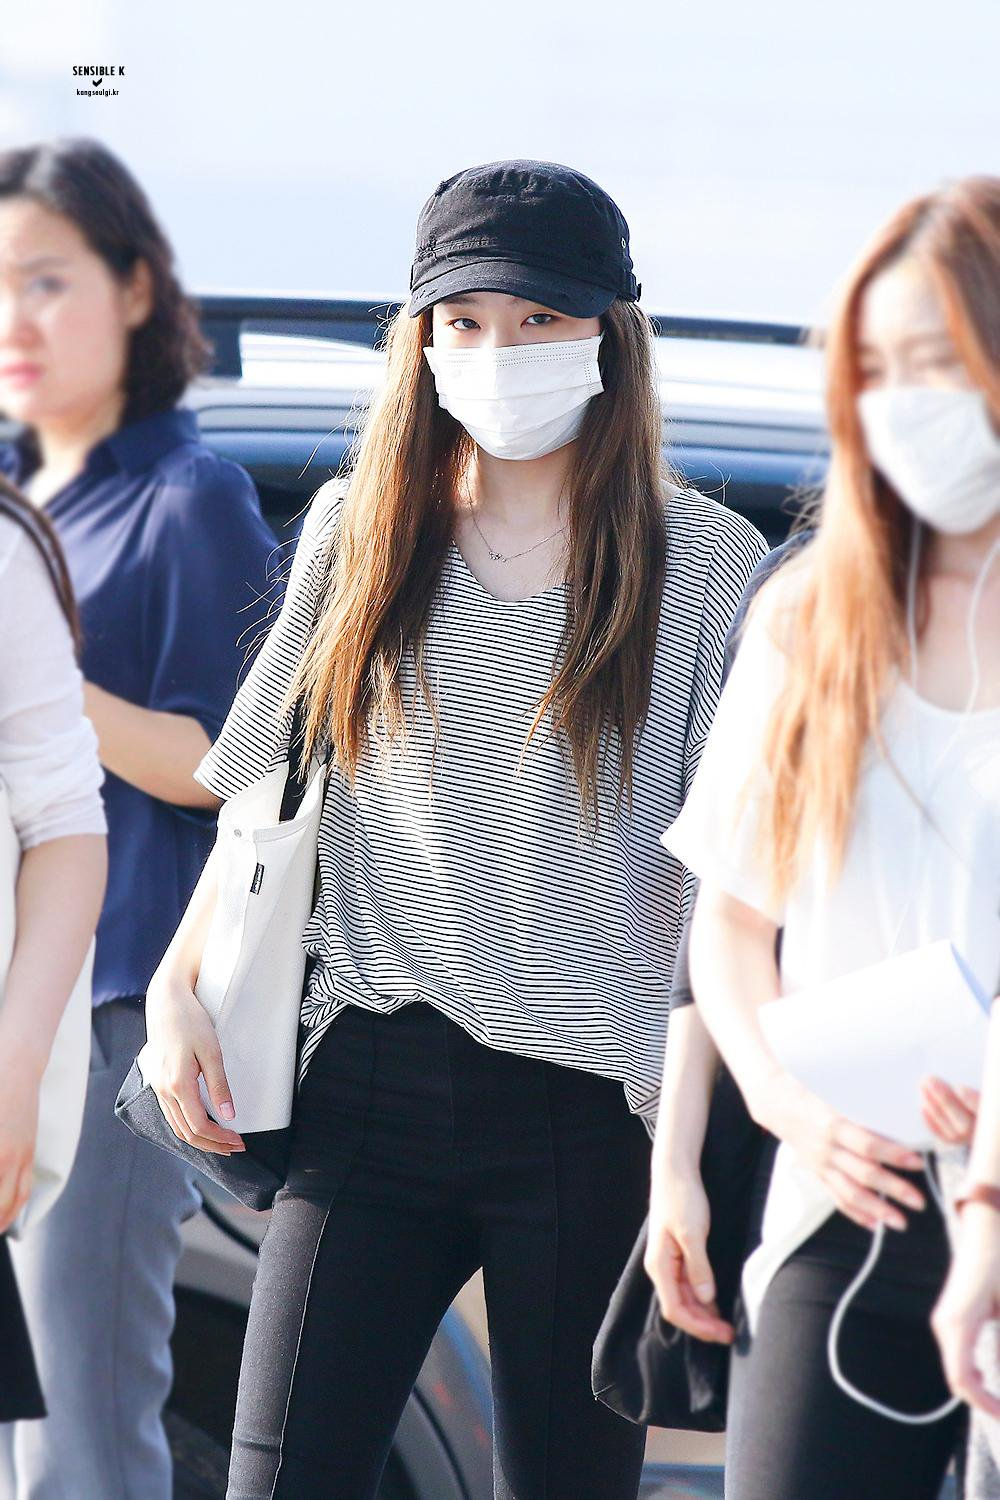 Other red velvet s airport fashion celebrity photos onehallyu - Seulgi Fashion Seulgi Airport Fashion Seulgi Airport 2016 Red Velvet Seulgi 2016